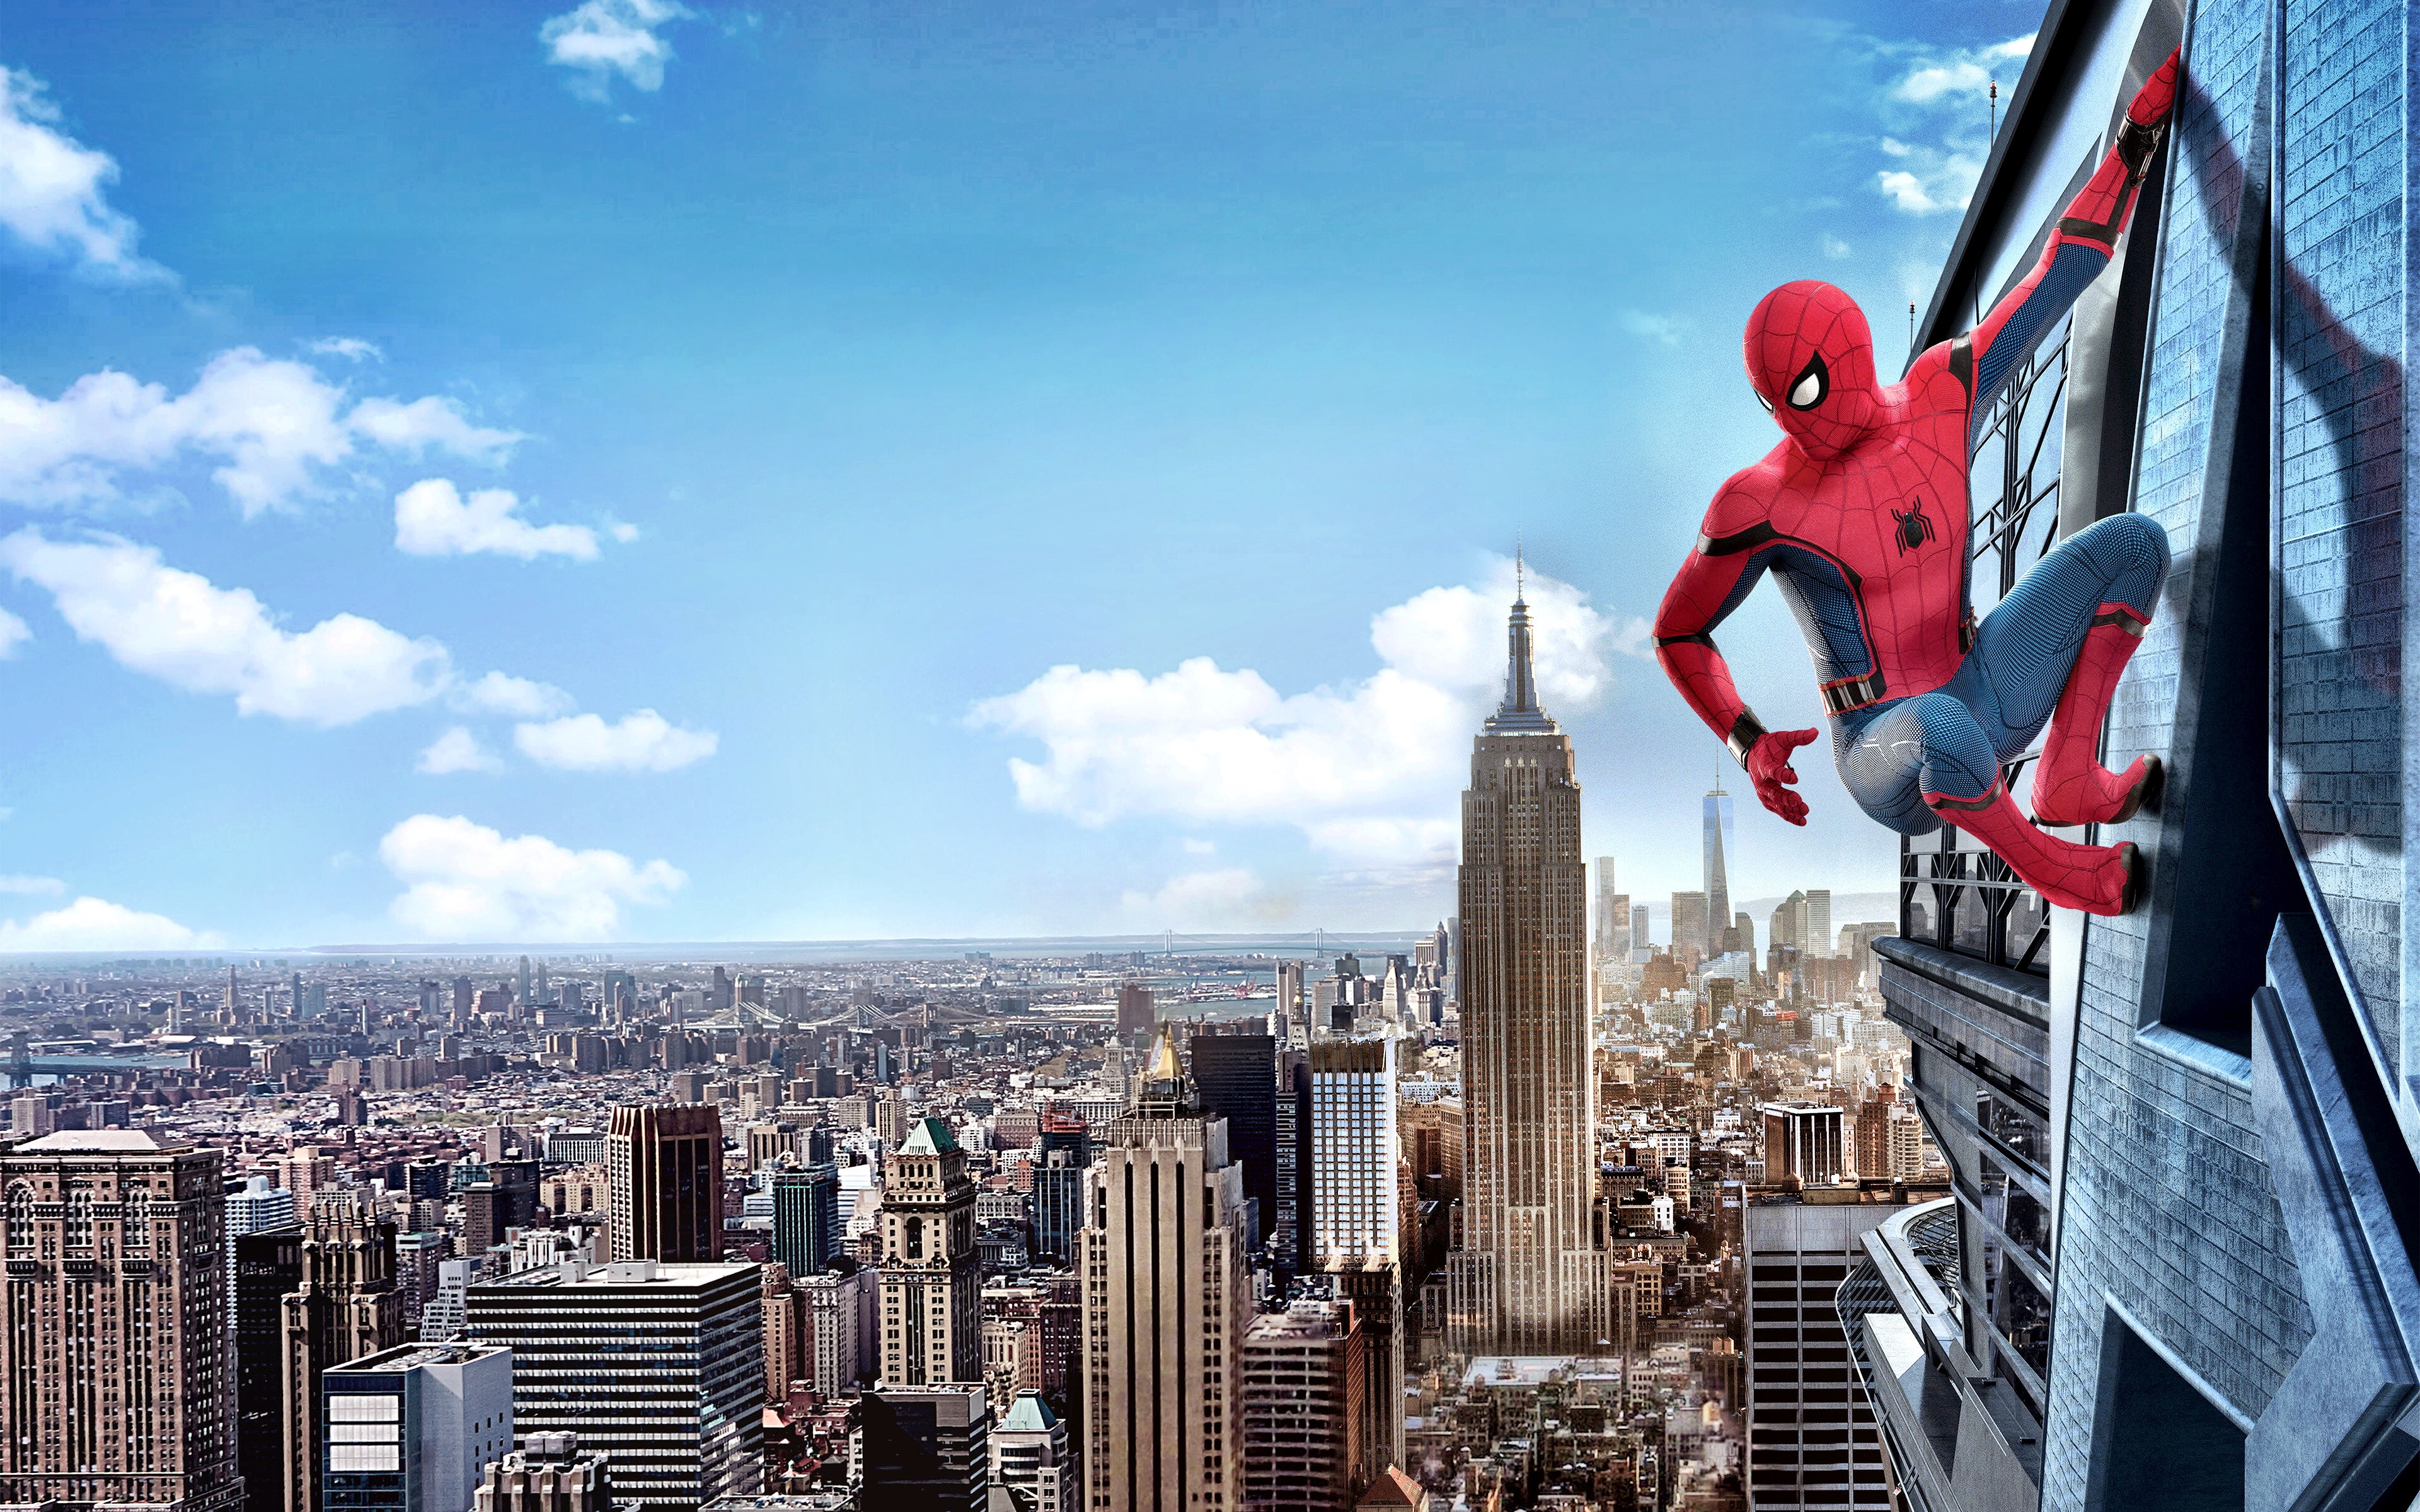 Wallpapers Spider Man Homecoming New York City Heroes 3840x2400 3840x2400